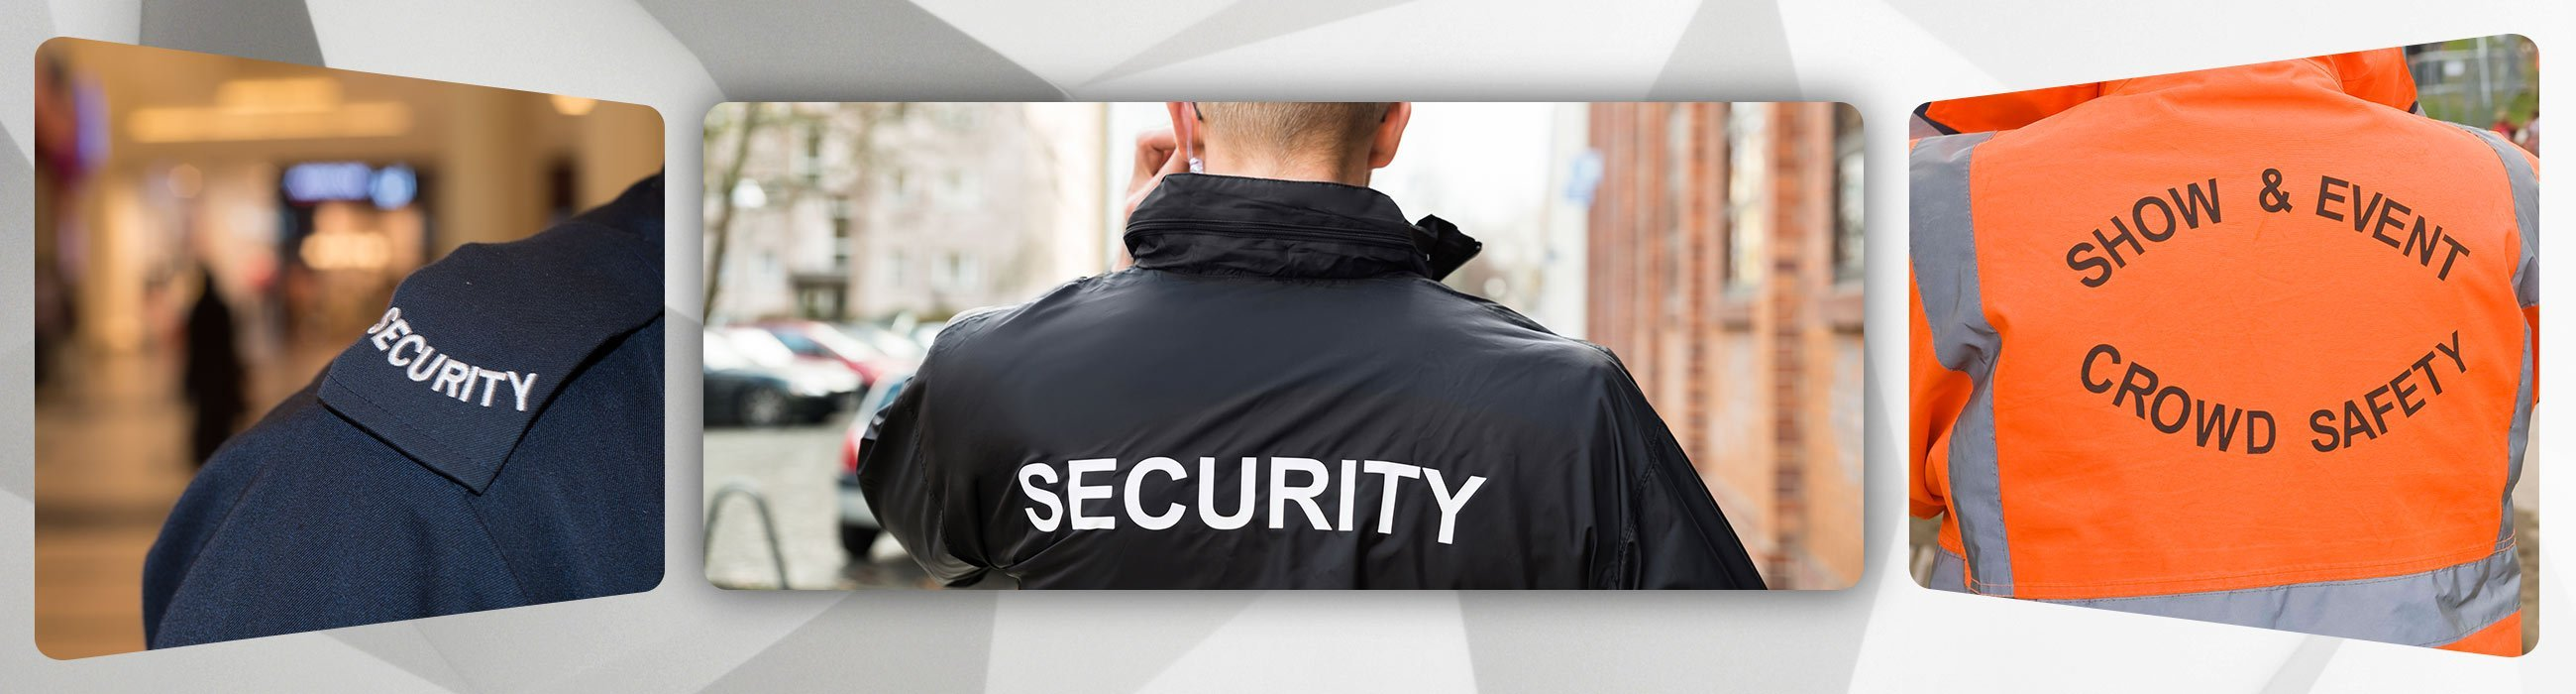 ironbark security guard mall secuirty and crowd control person